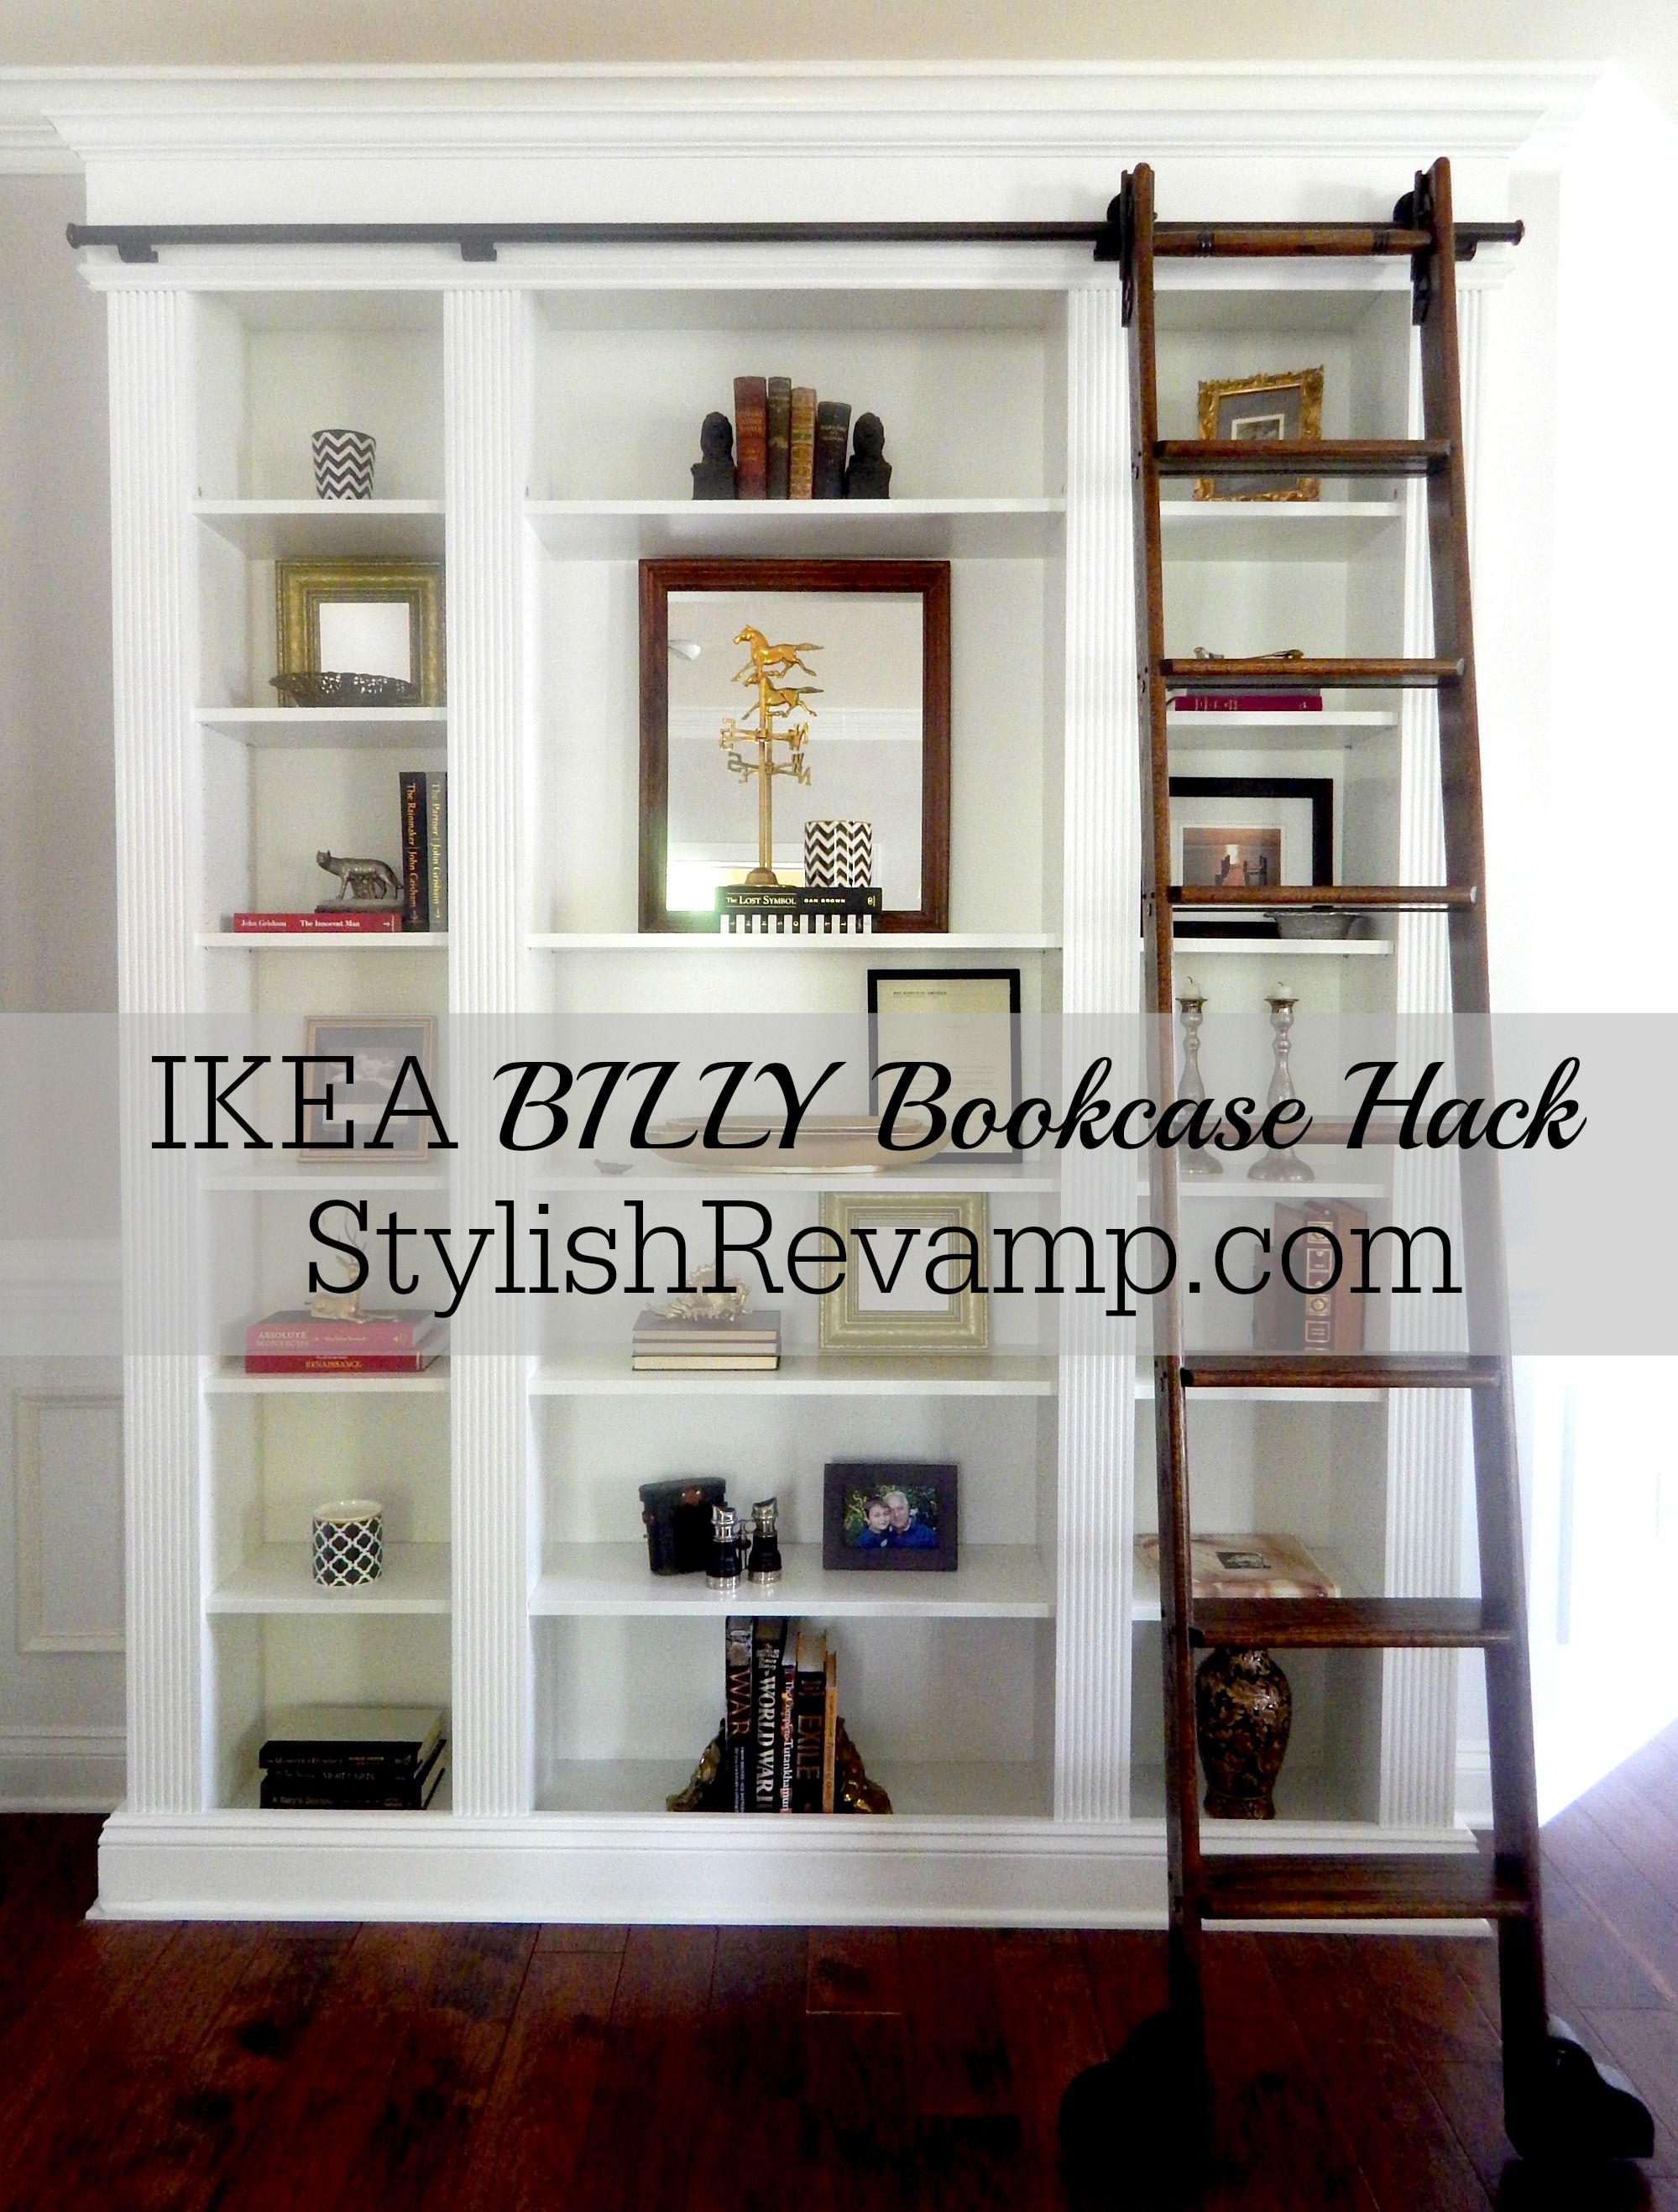 IKEA BILLY Bookcase Hack | Pinterest | Billy bookcase hack, Ikea ...